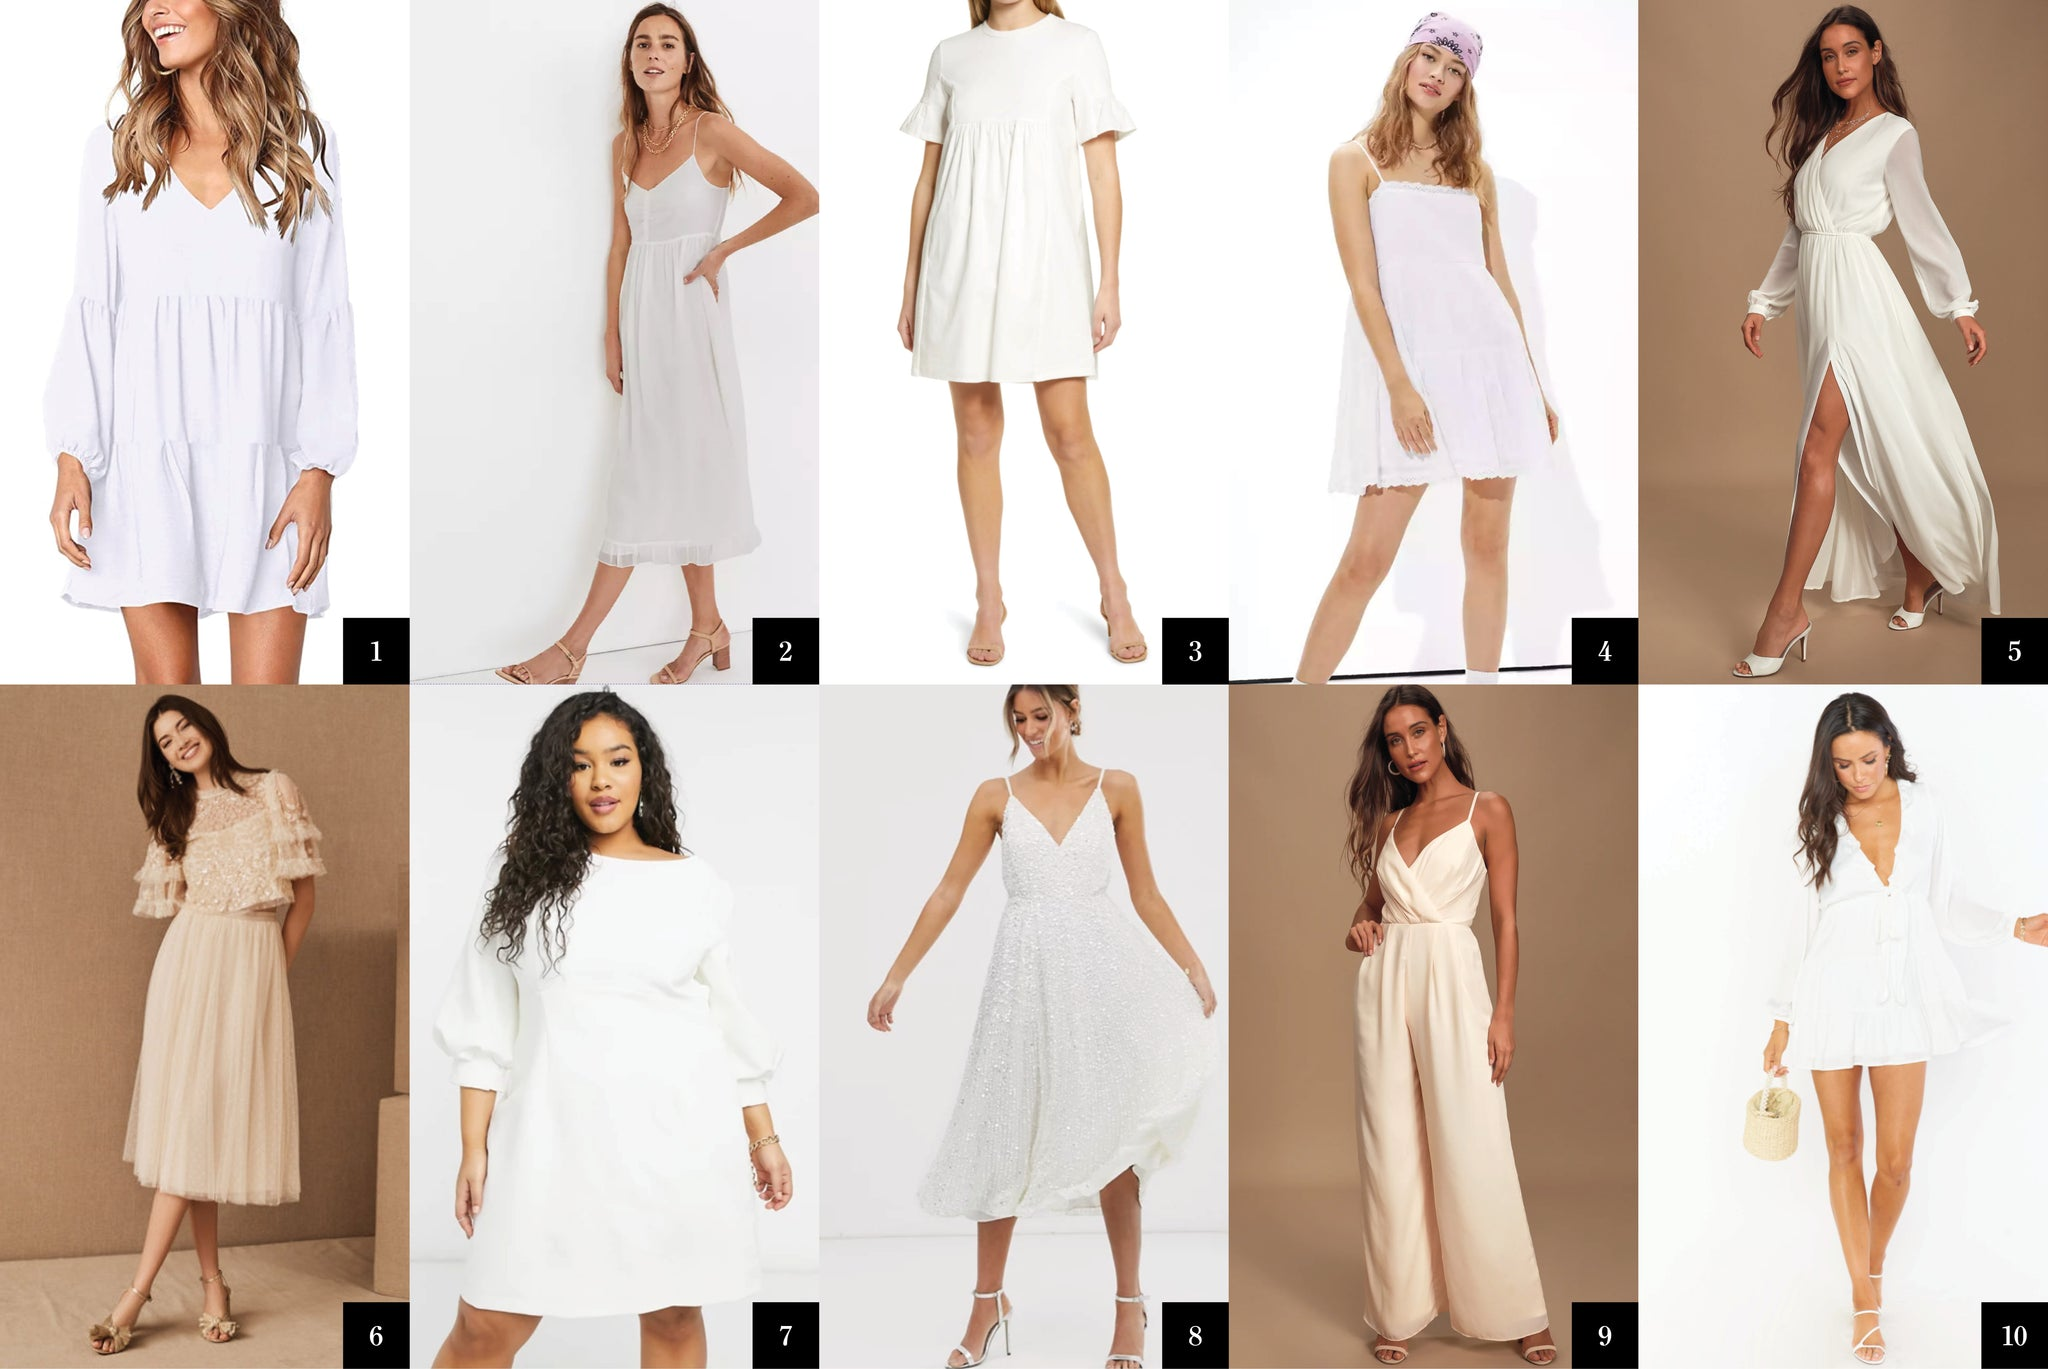 Fashion Roundup: 10 Little White Dresses